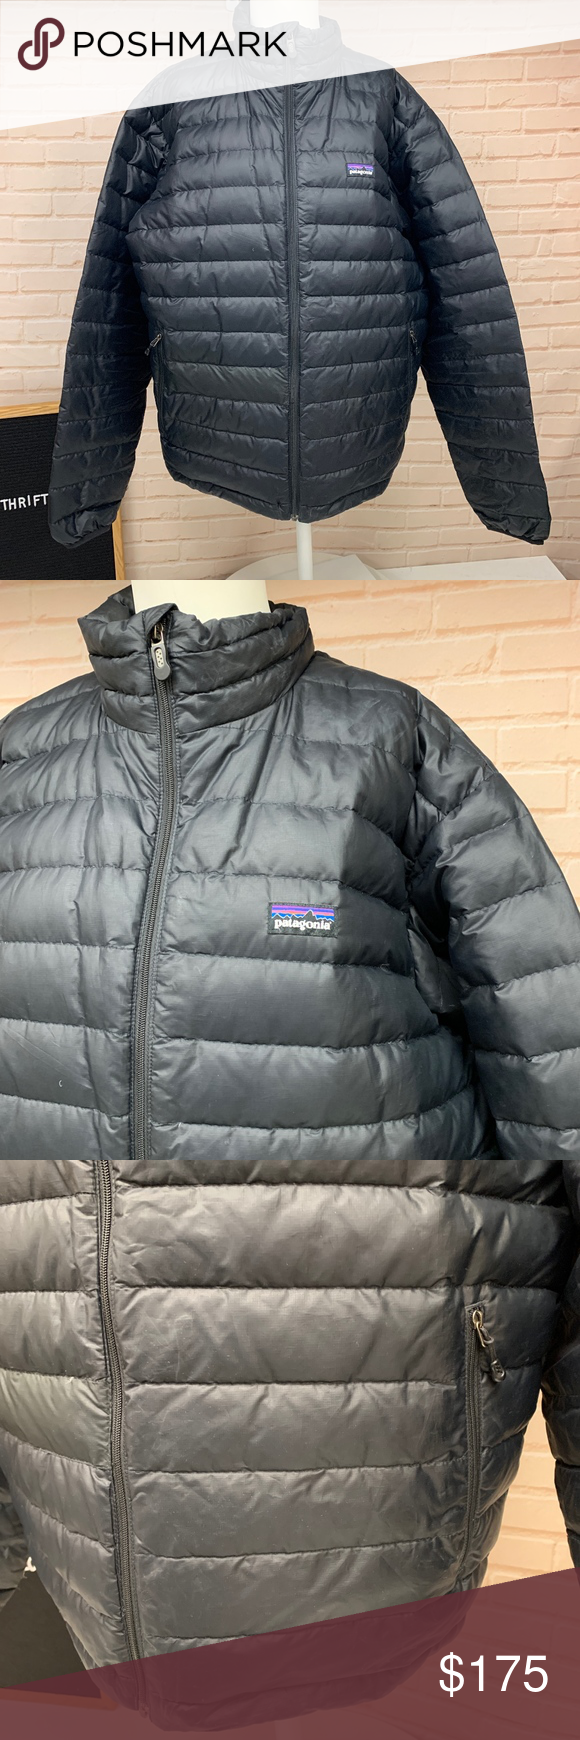 Patagonia Down Filled Puffer Jacket Dark Gray Jackets